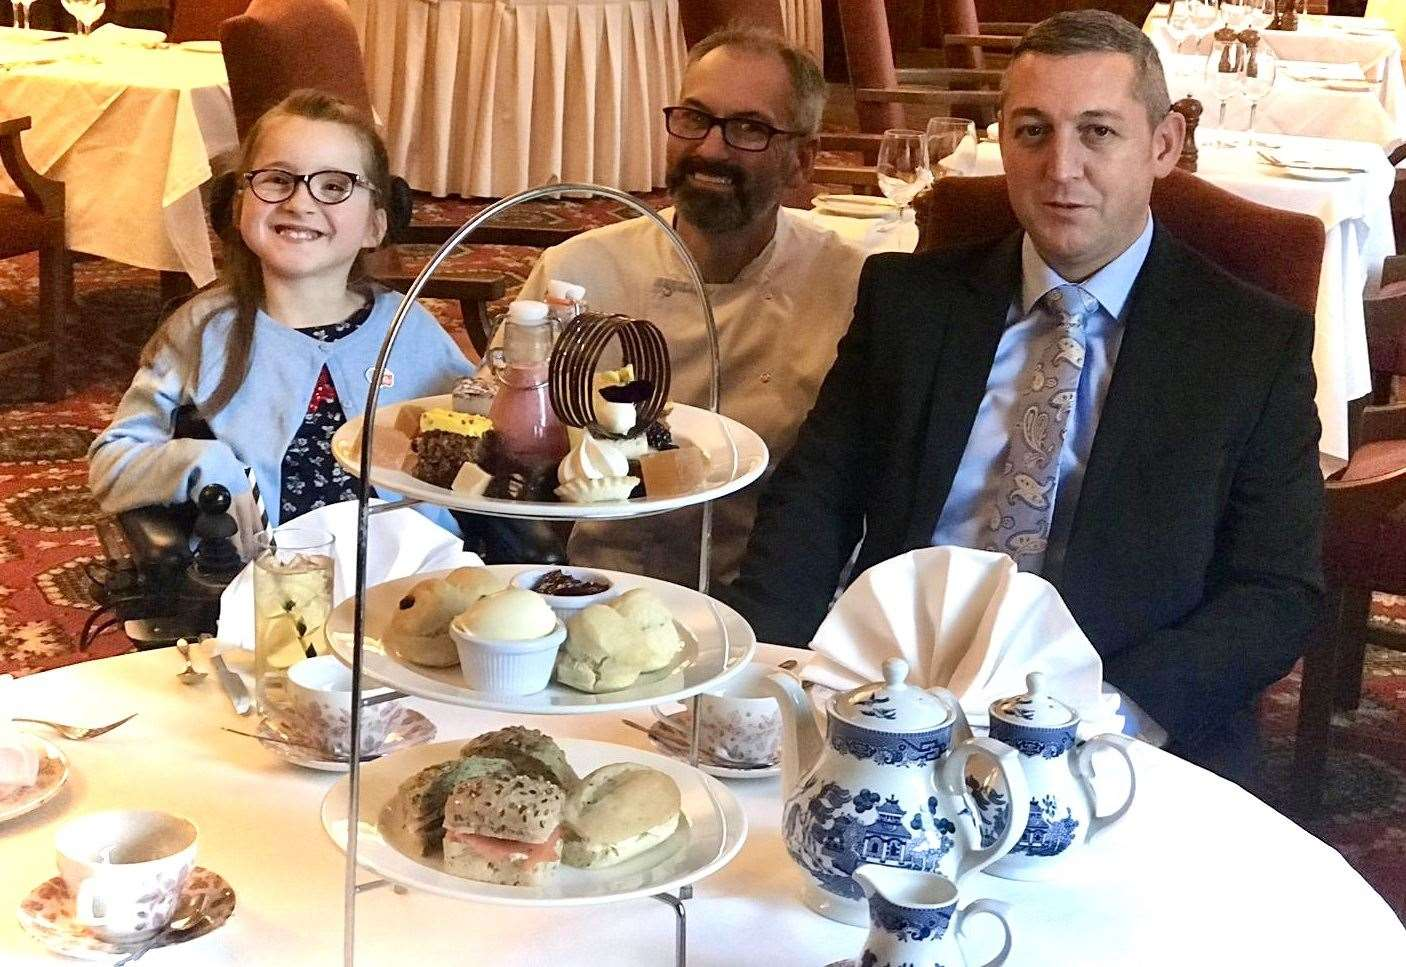 Hotel's afternoon tea will help girl get special wheelchair